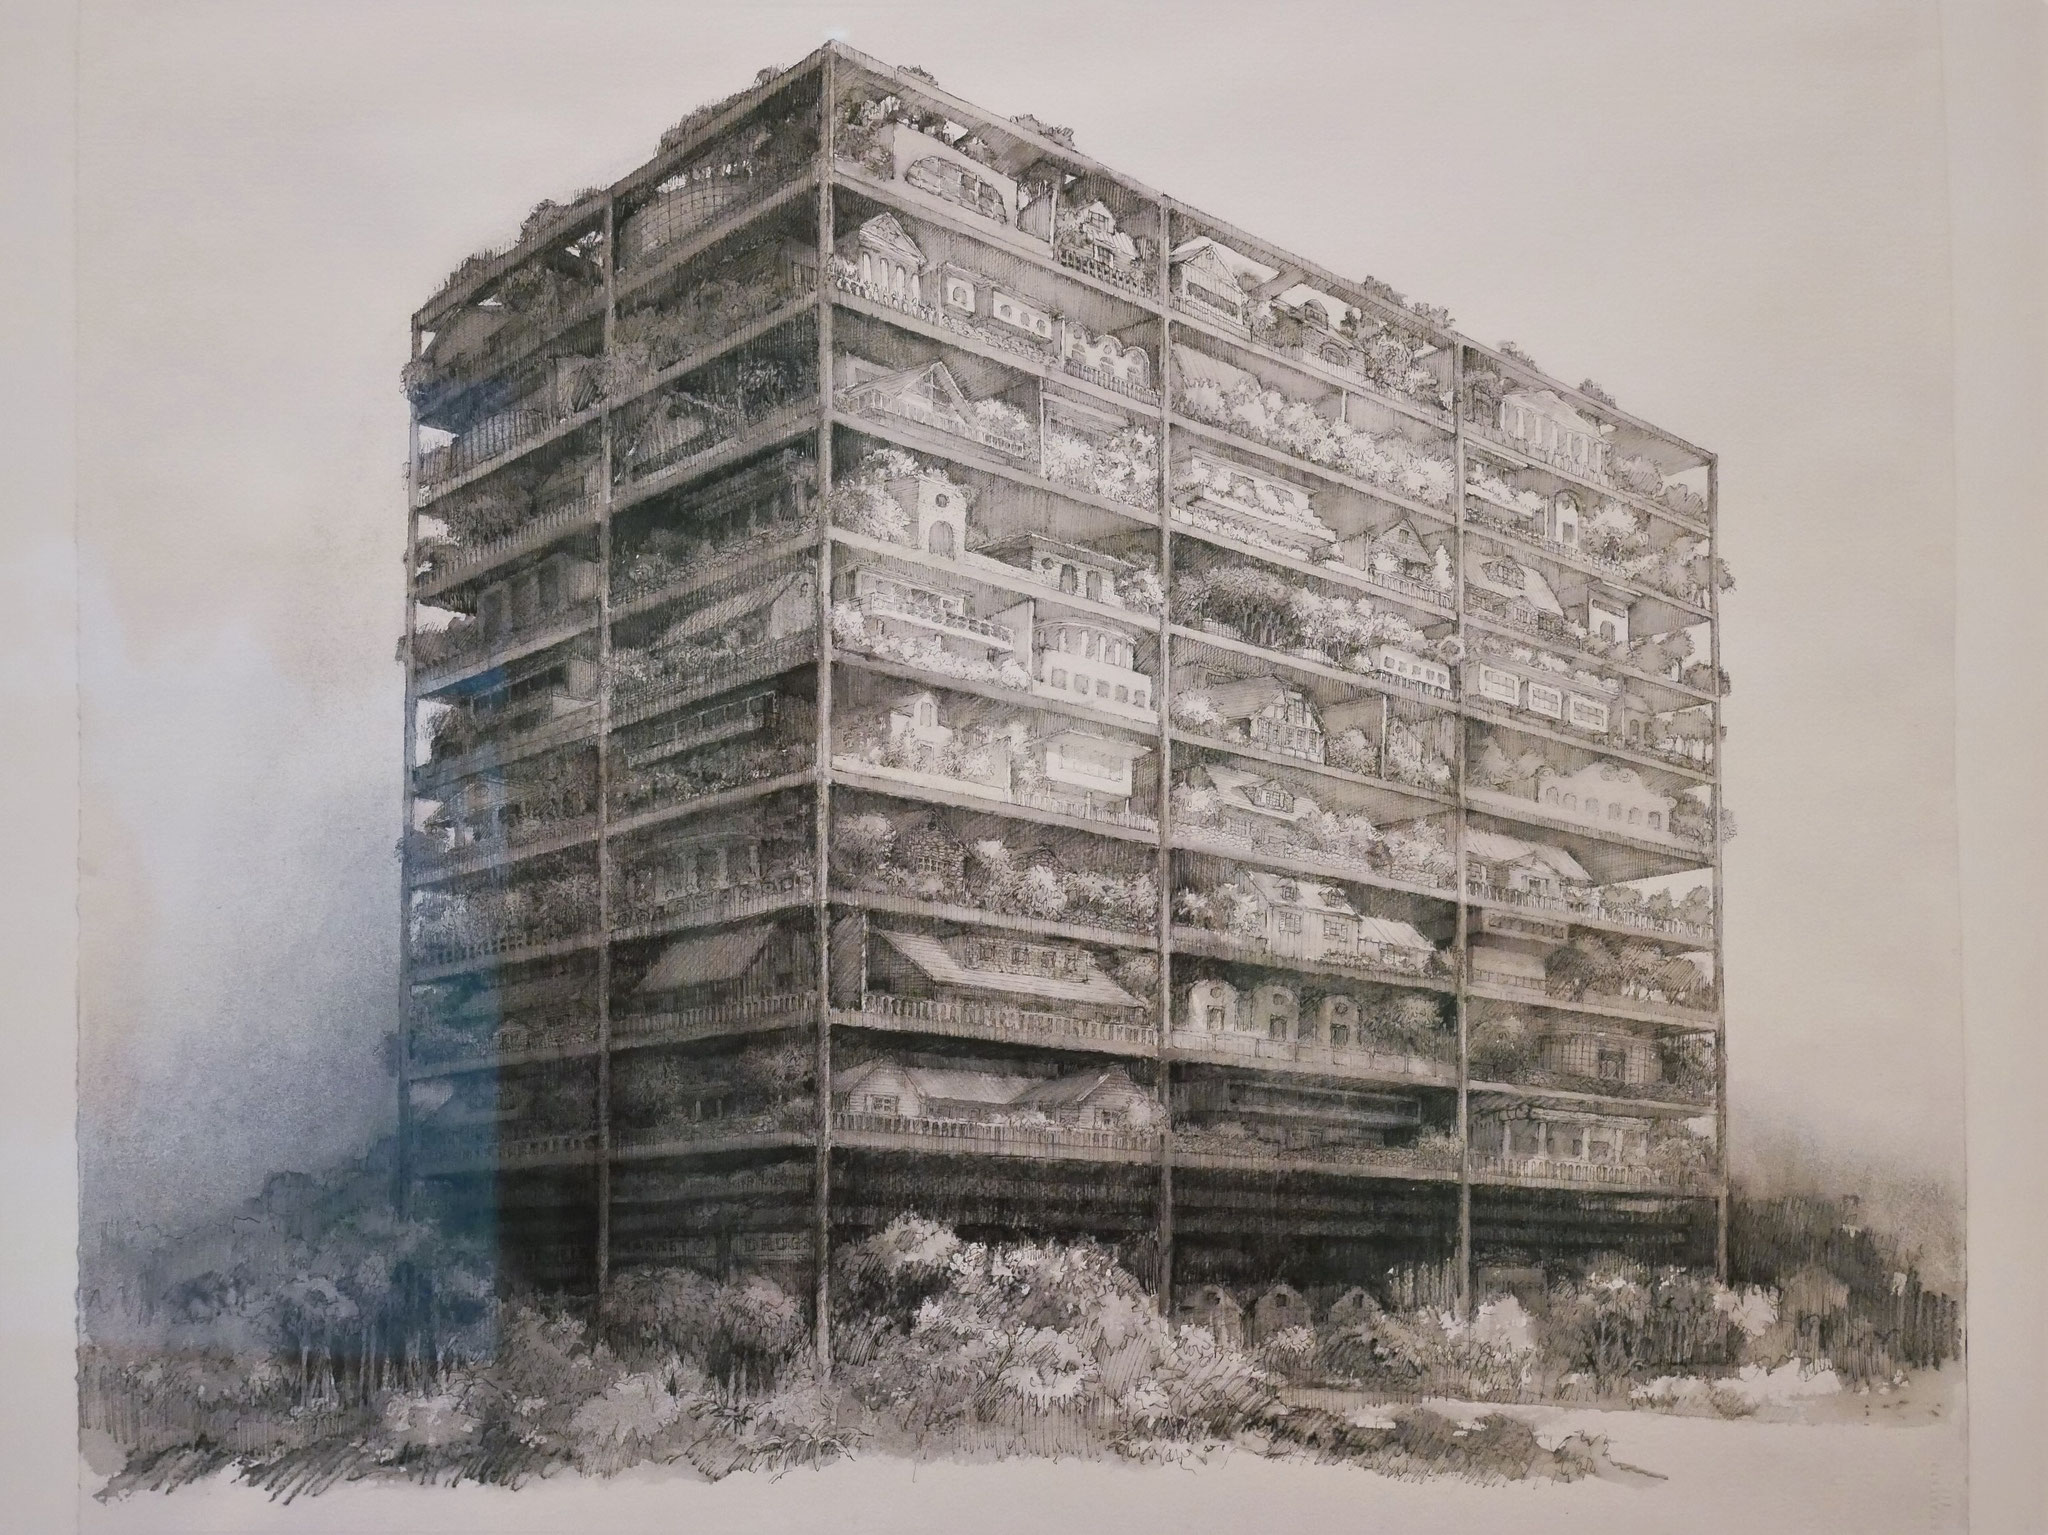 SITE, James Wines Highrise of Homes, project (Exterior perspective) 1981